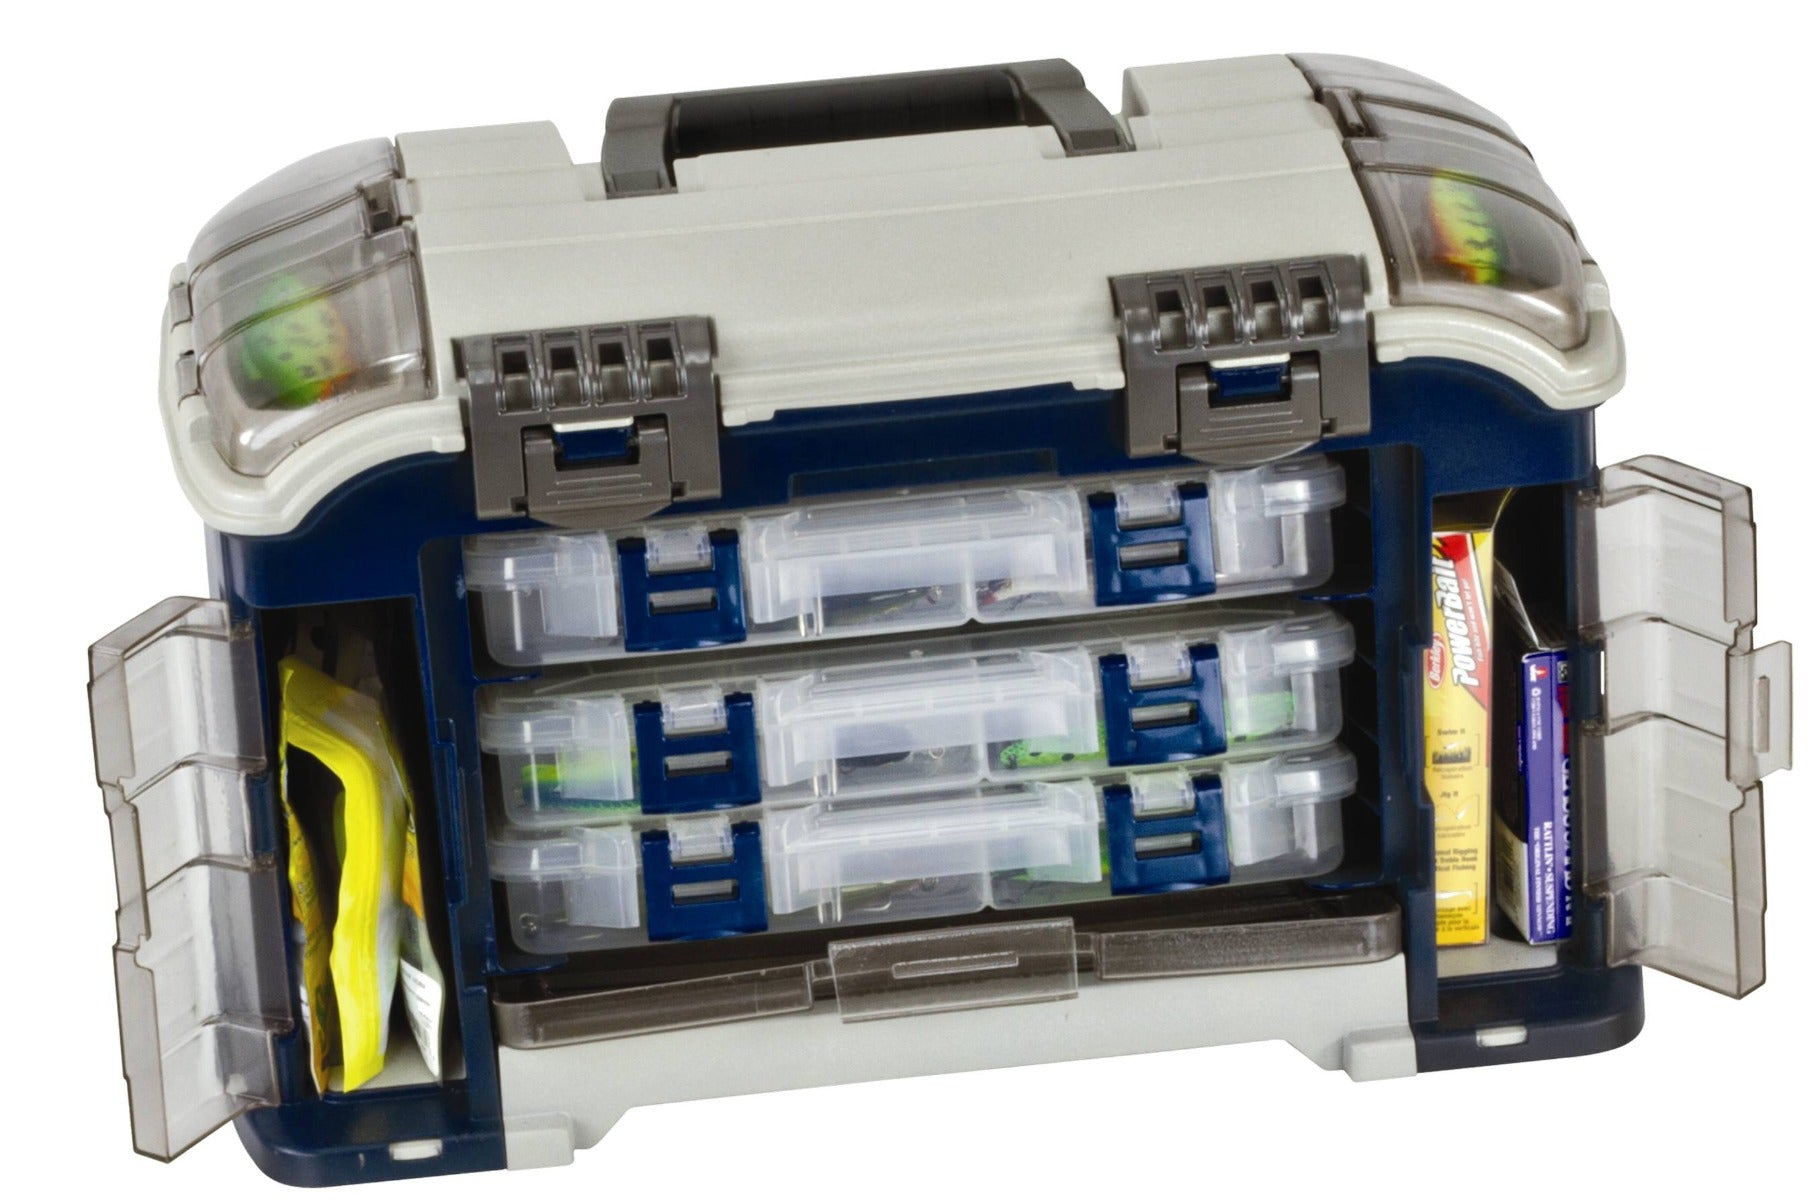 Plano 728 Angled System Tackle Box